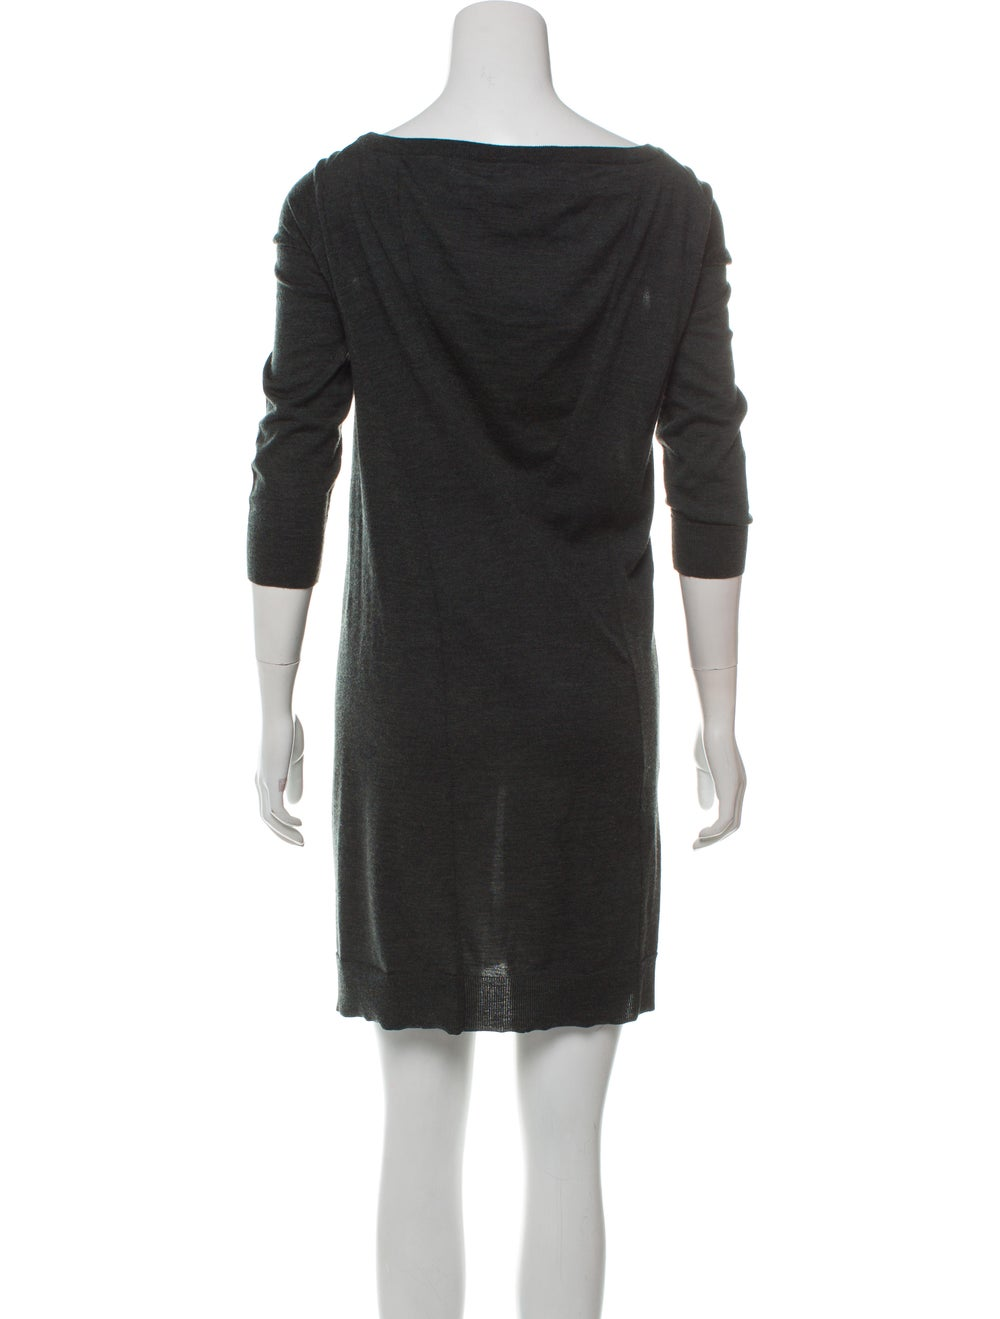 Balenciaga Wool Knit Dress green - image 3